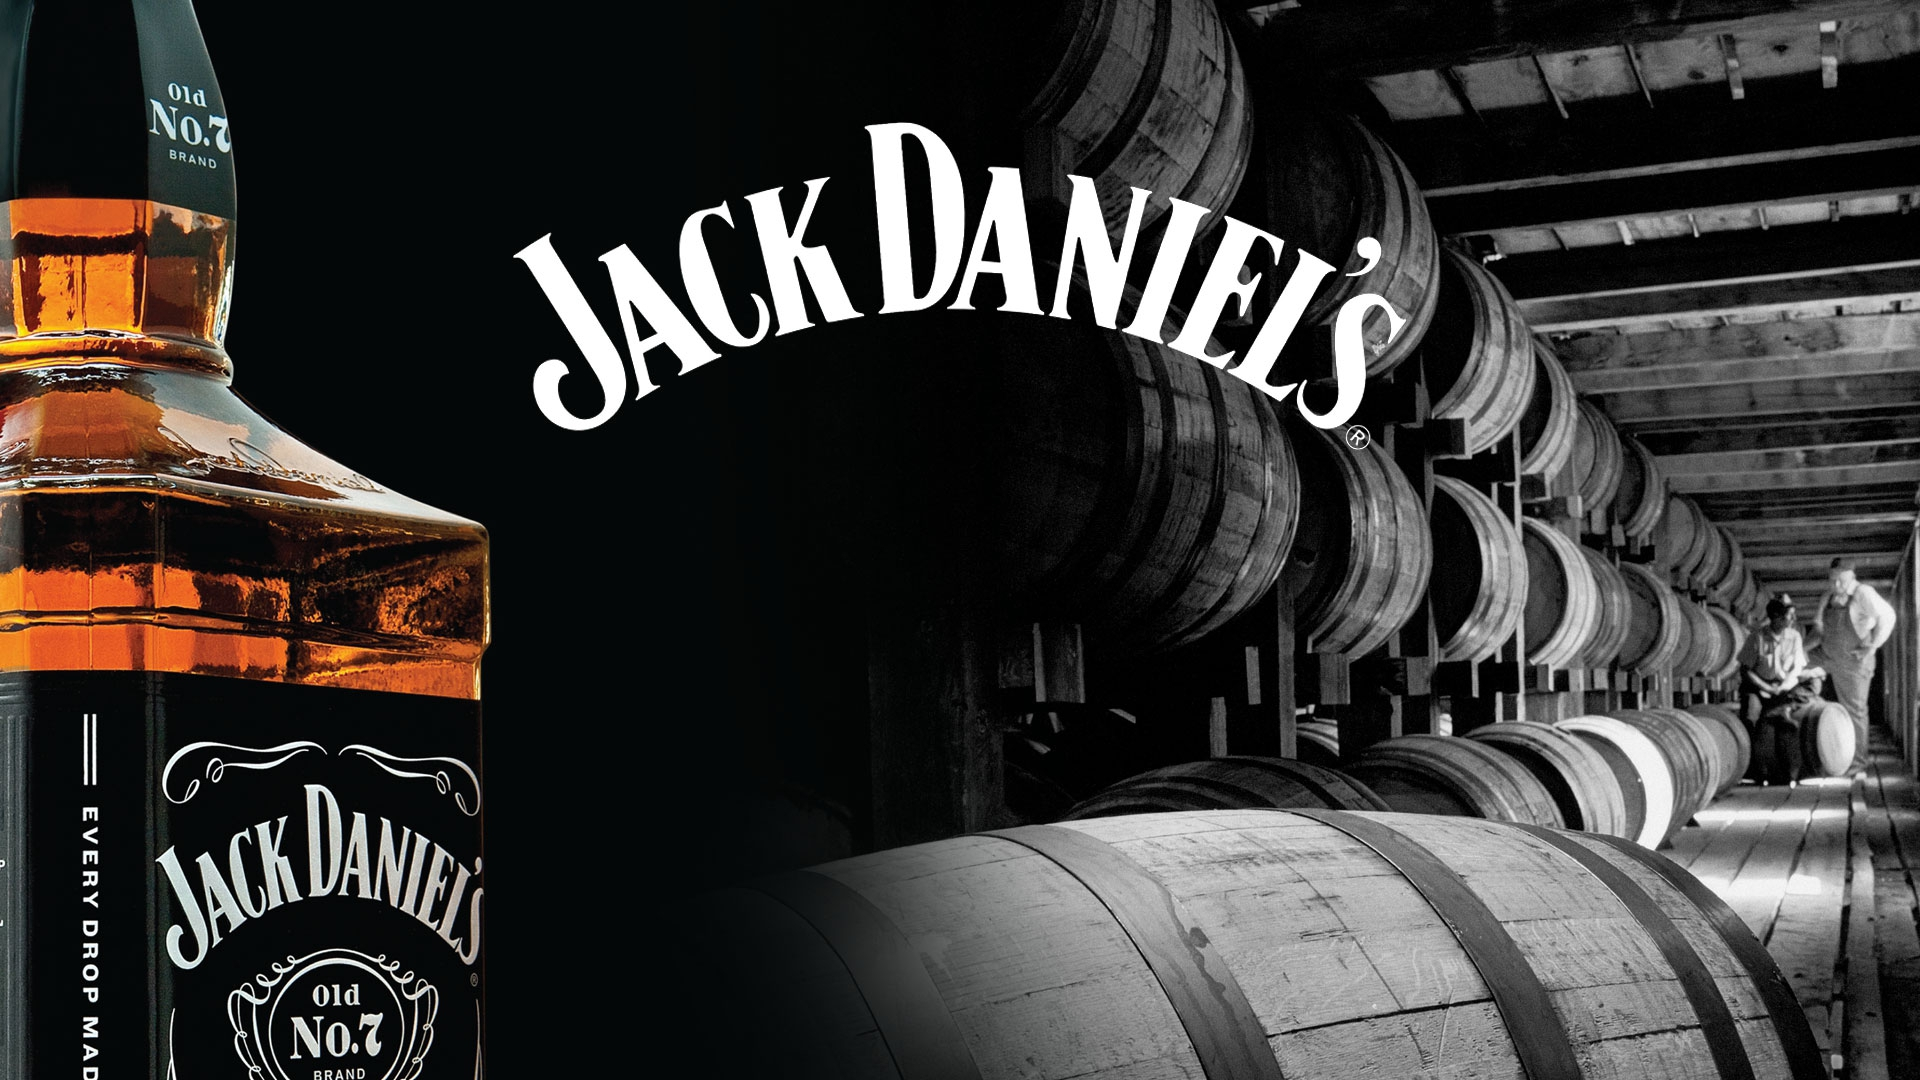 Jack daniels wallpapers images photos pictures backgrounds jack daniels hd background voltagebd Images